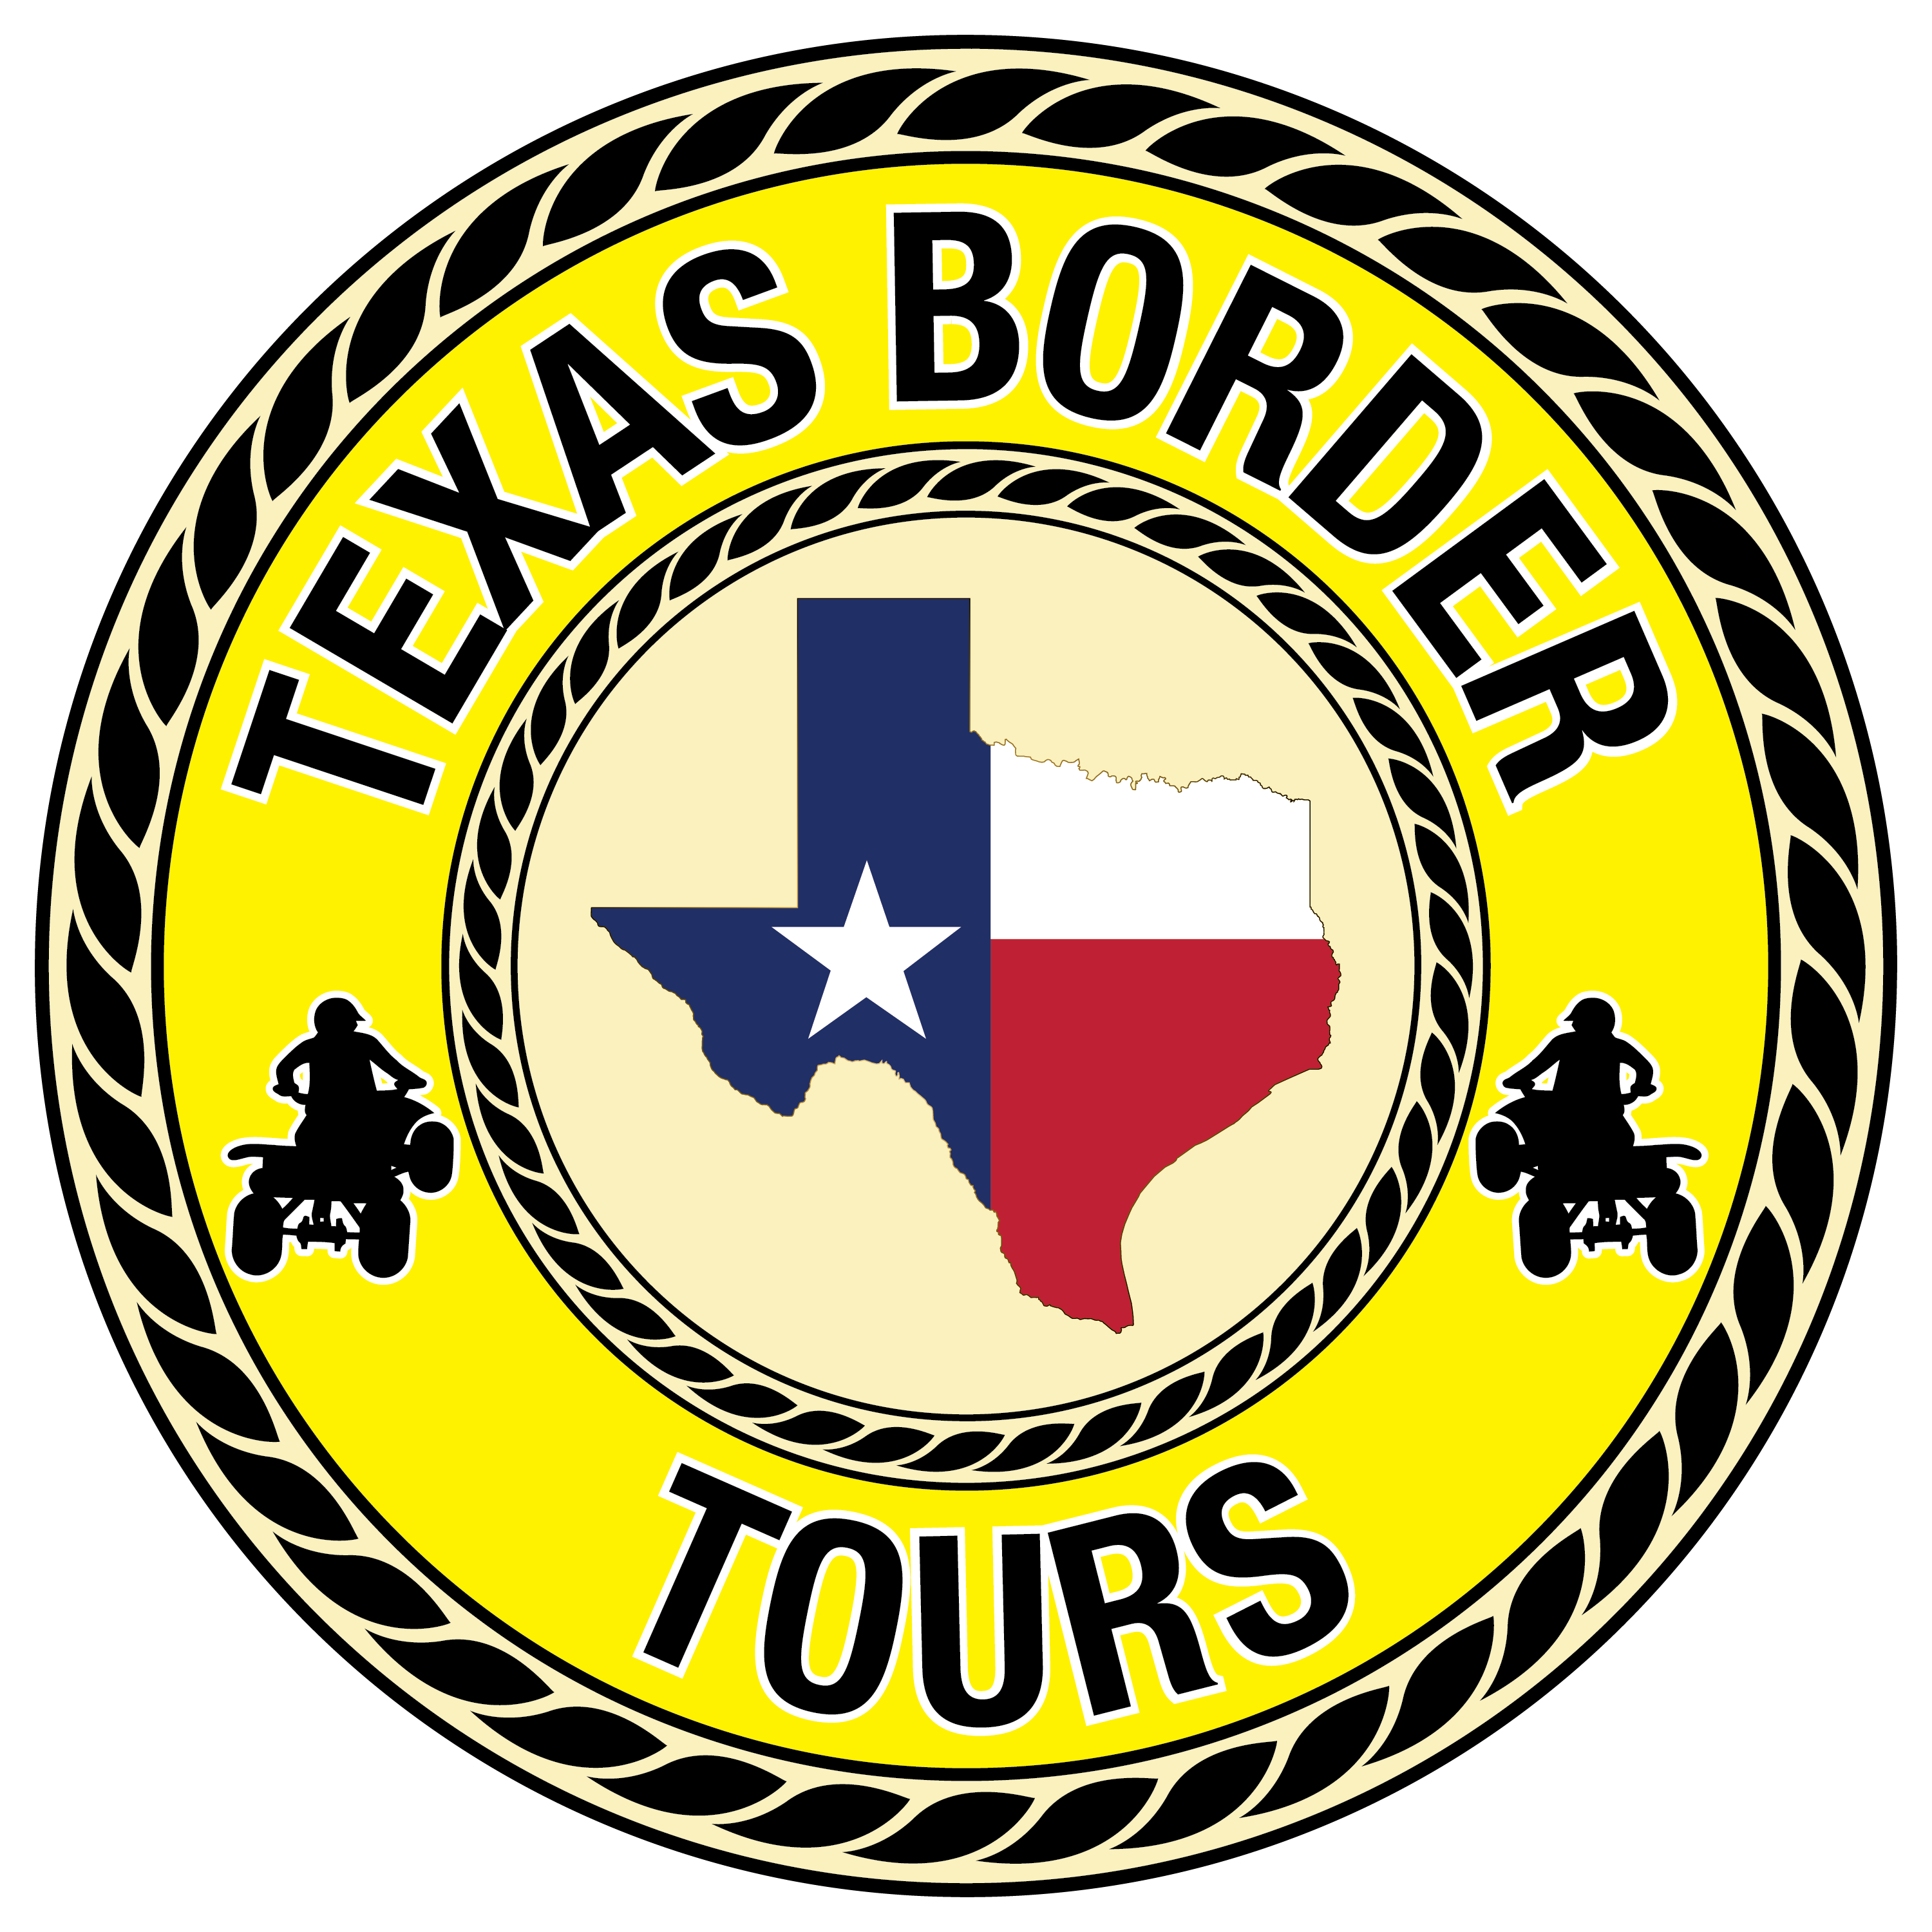 Texas Border Tours